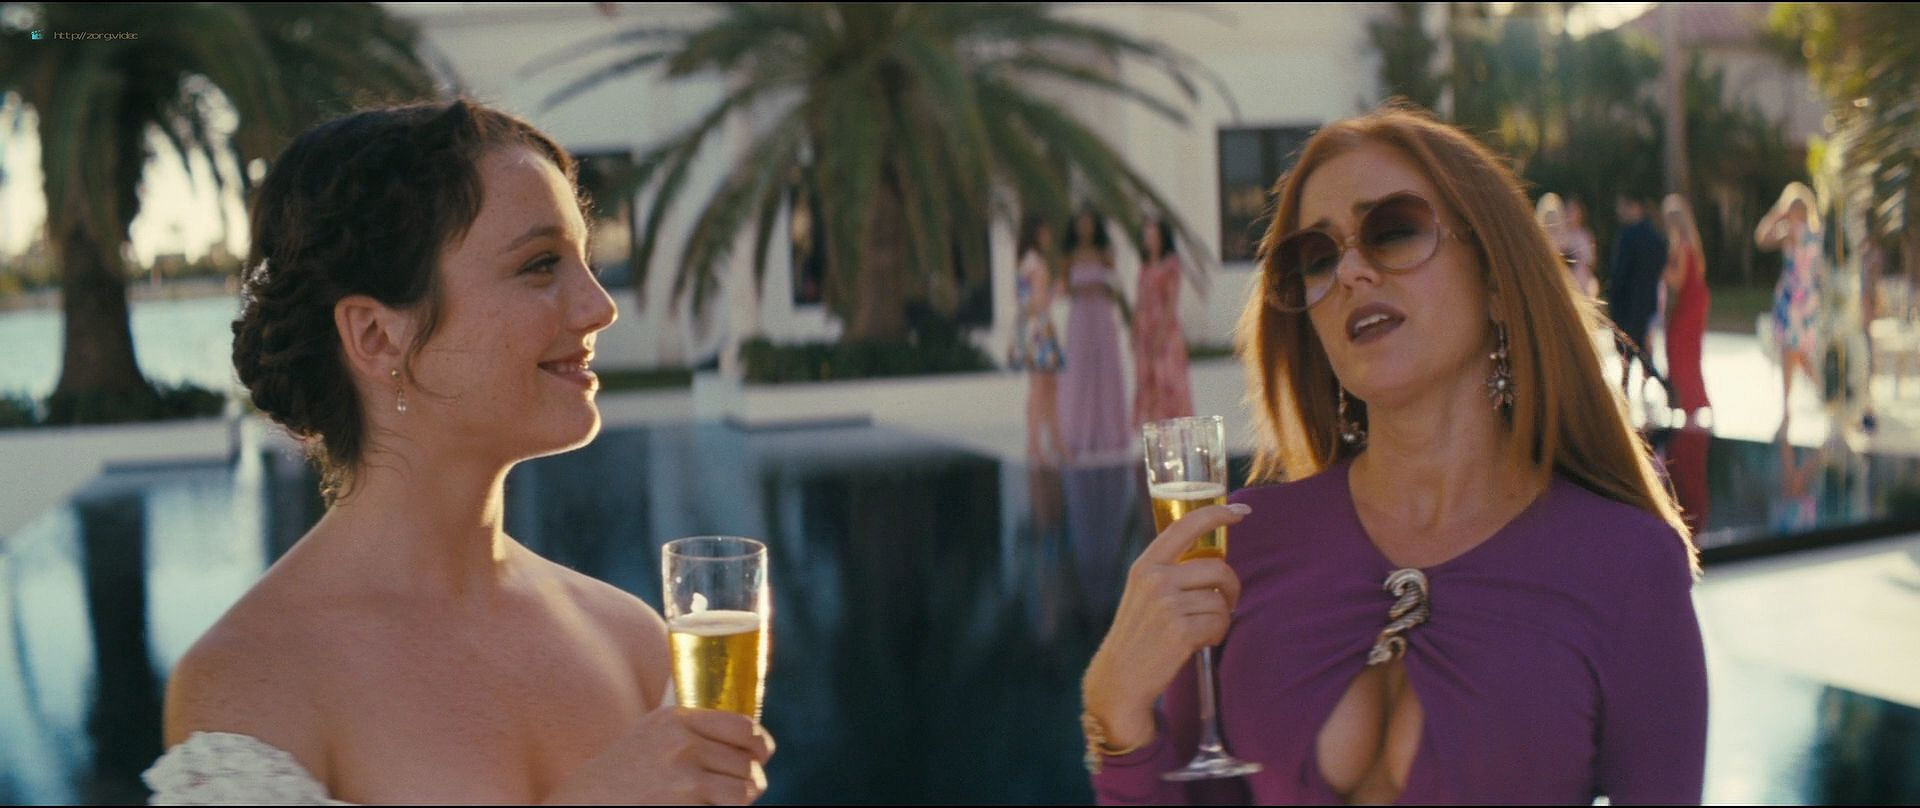 Isla Fisher hot and sexy others nude topless - The Beach Bum (2019) 1080p BluRay (13)